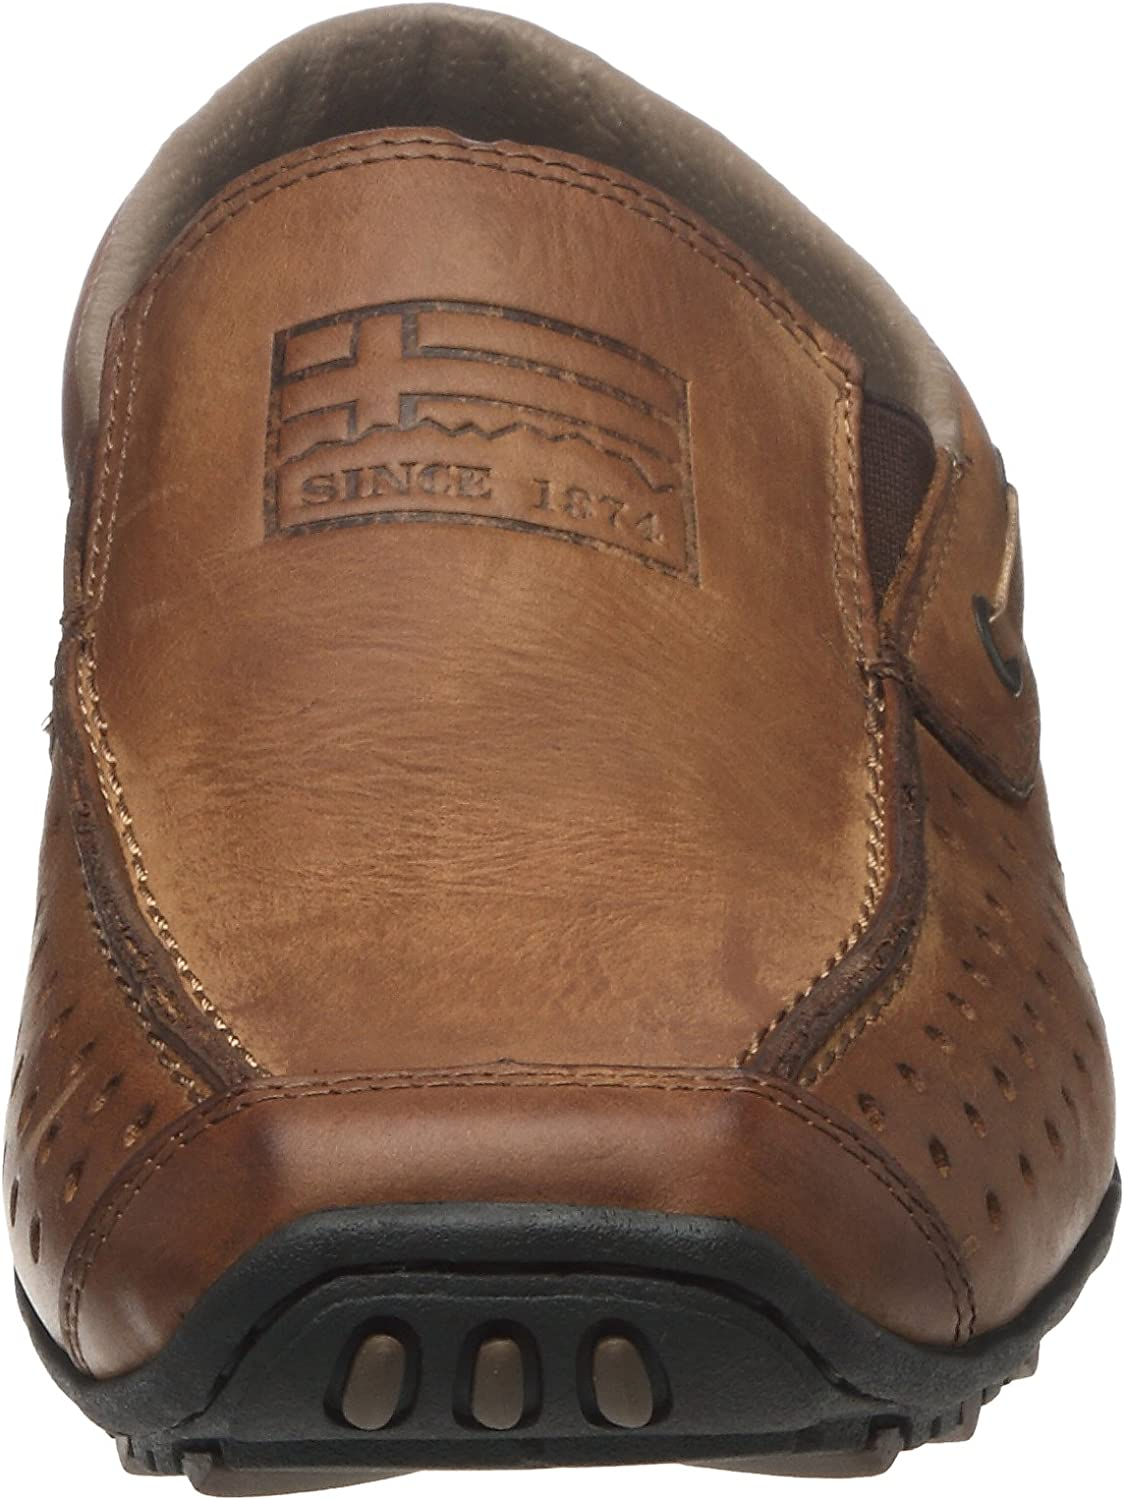 Rieker Mens 08969 Loafers